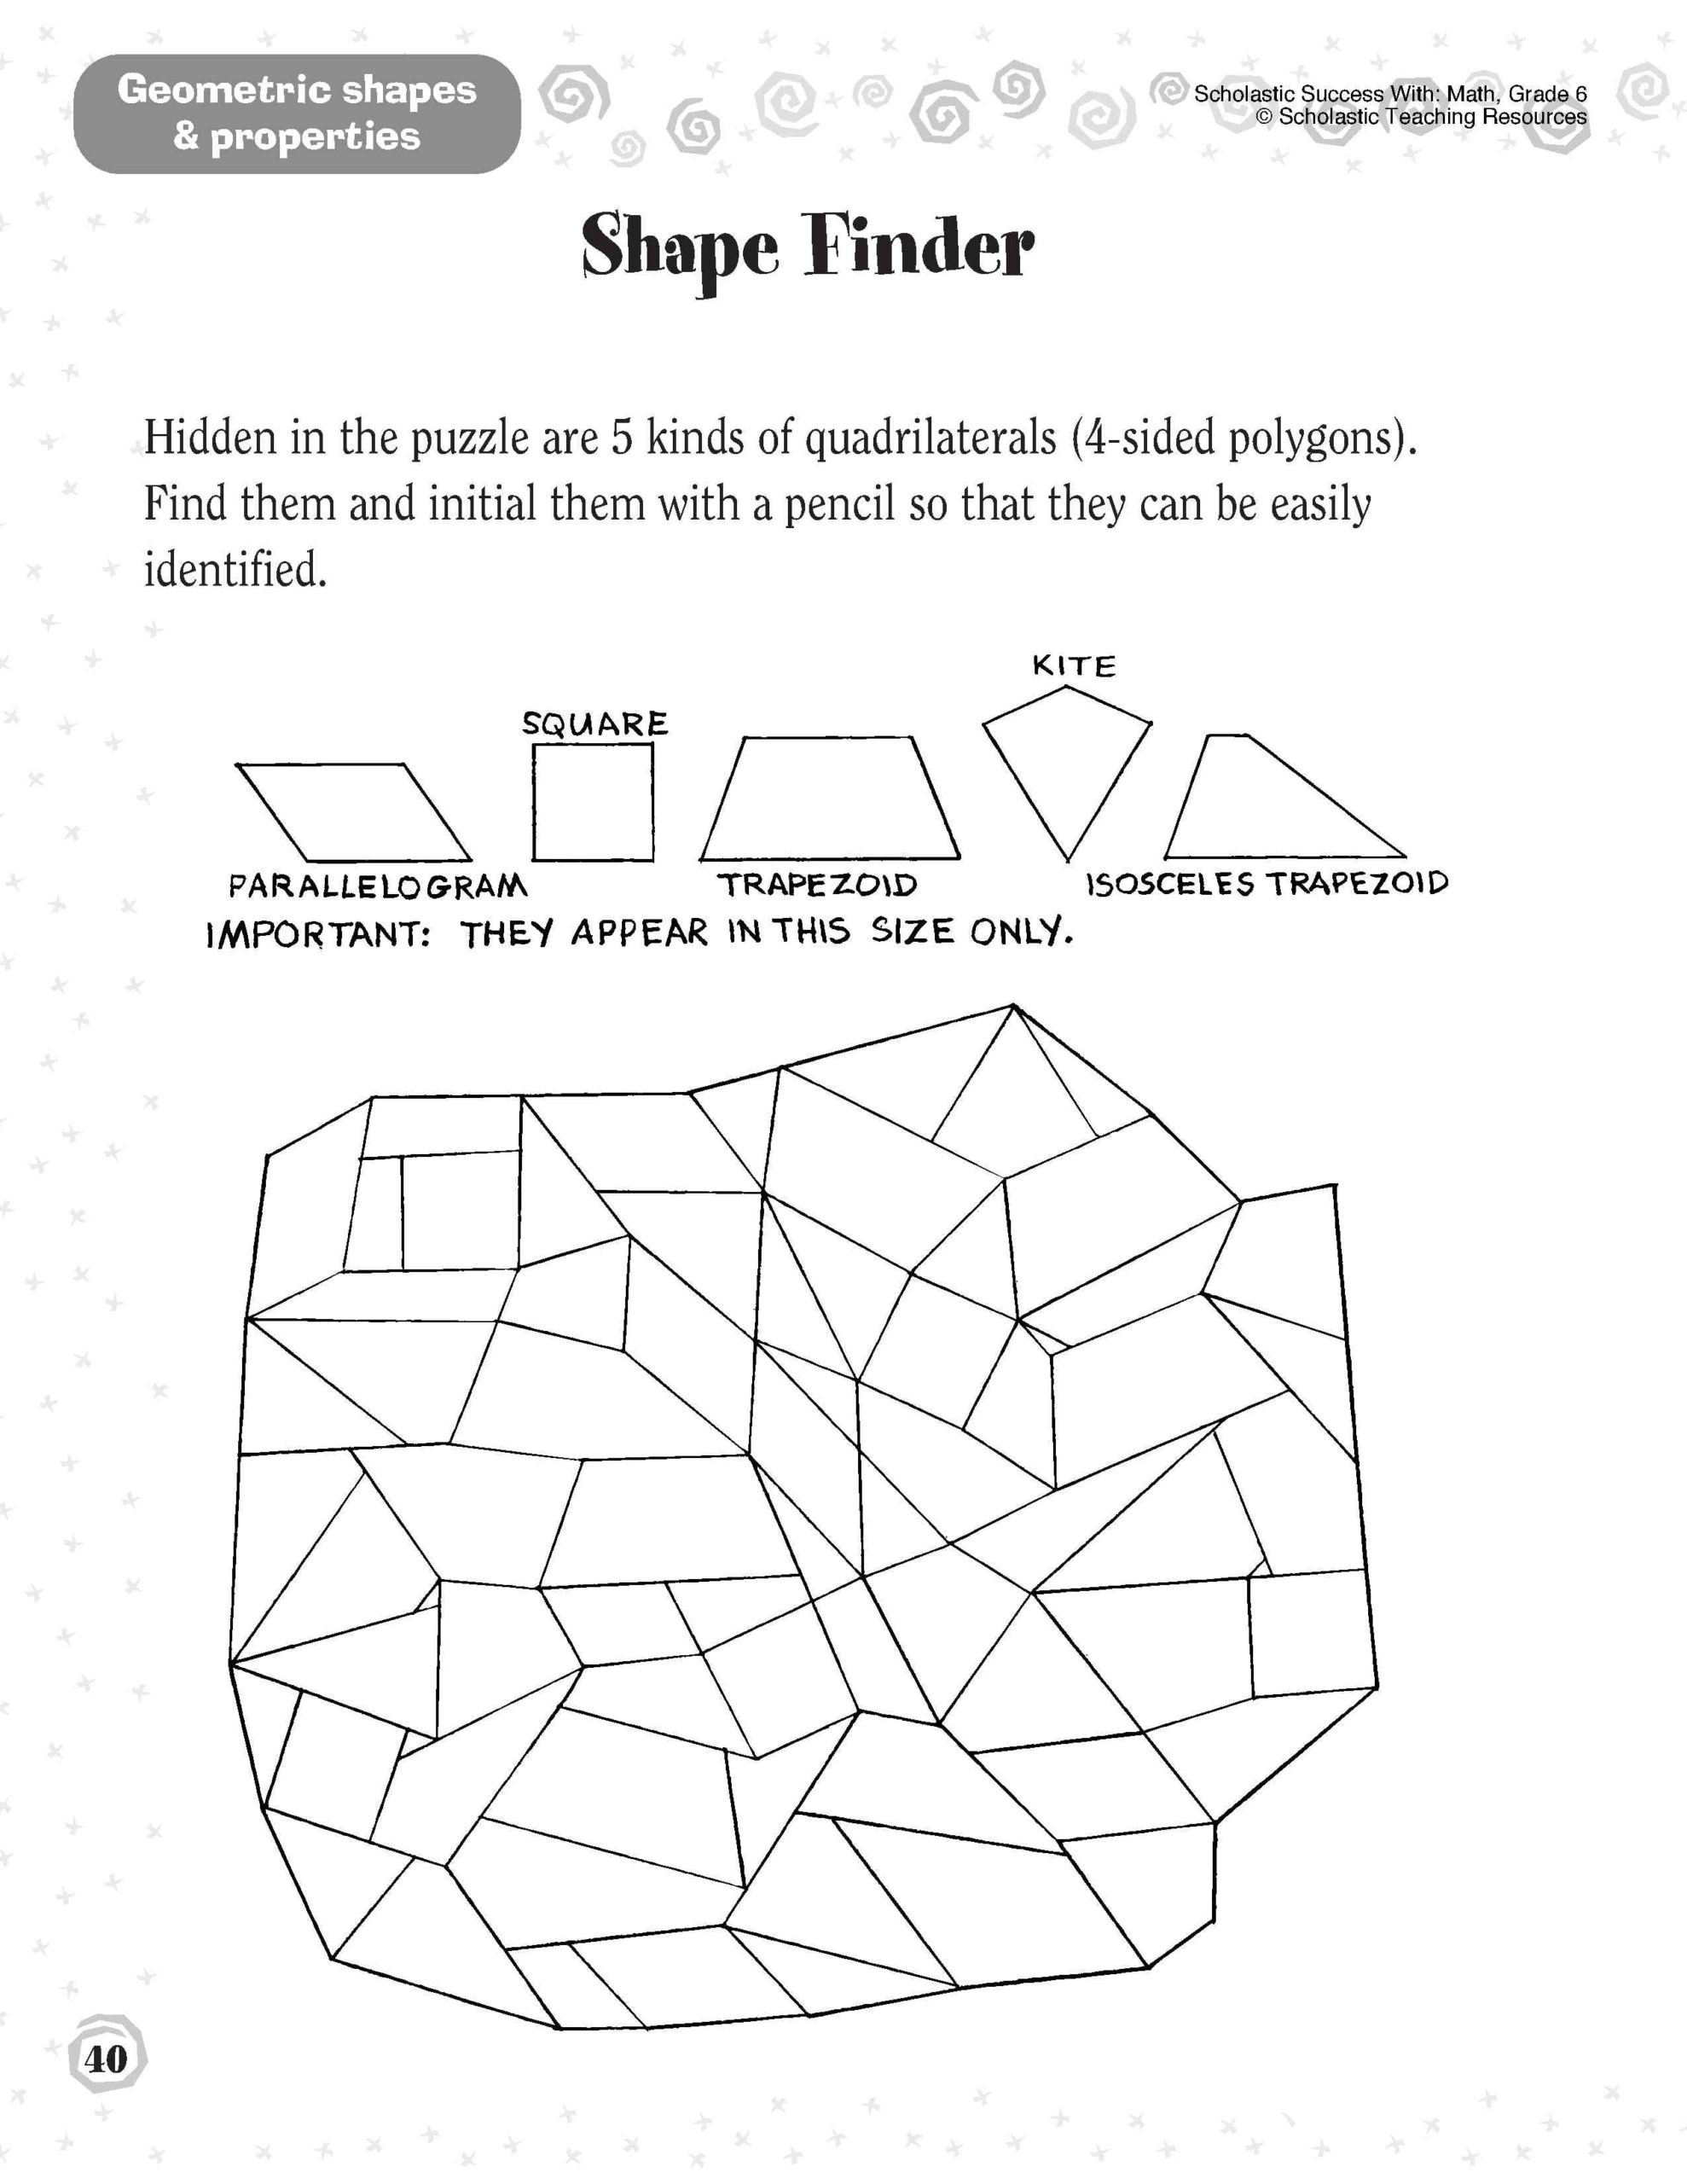 Pattern Worksheets 4th Grade 1st Grade Shapes Worksheet Printable Worksheets and